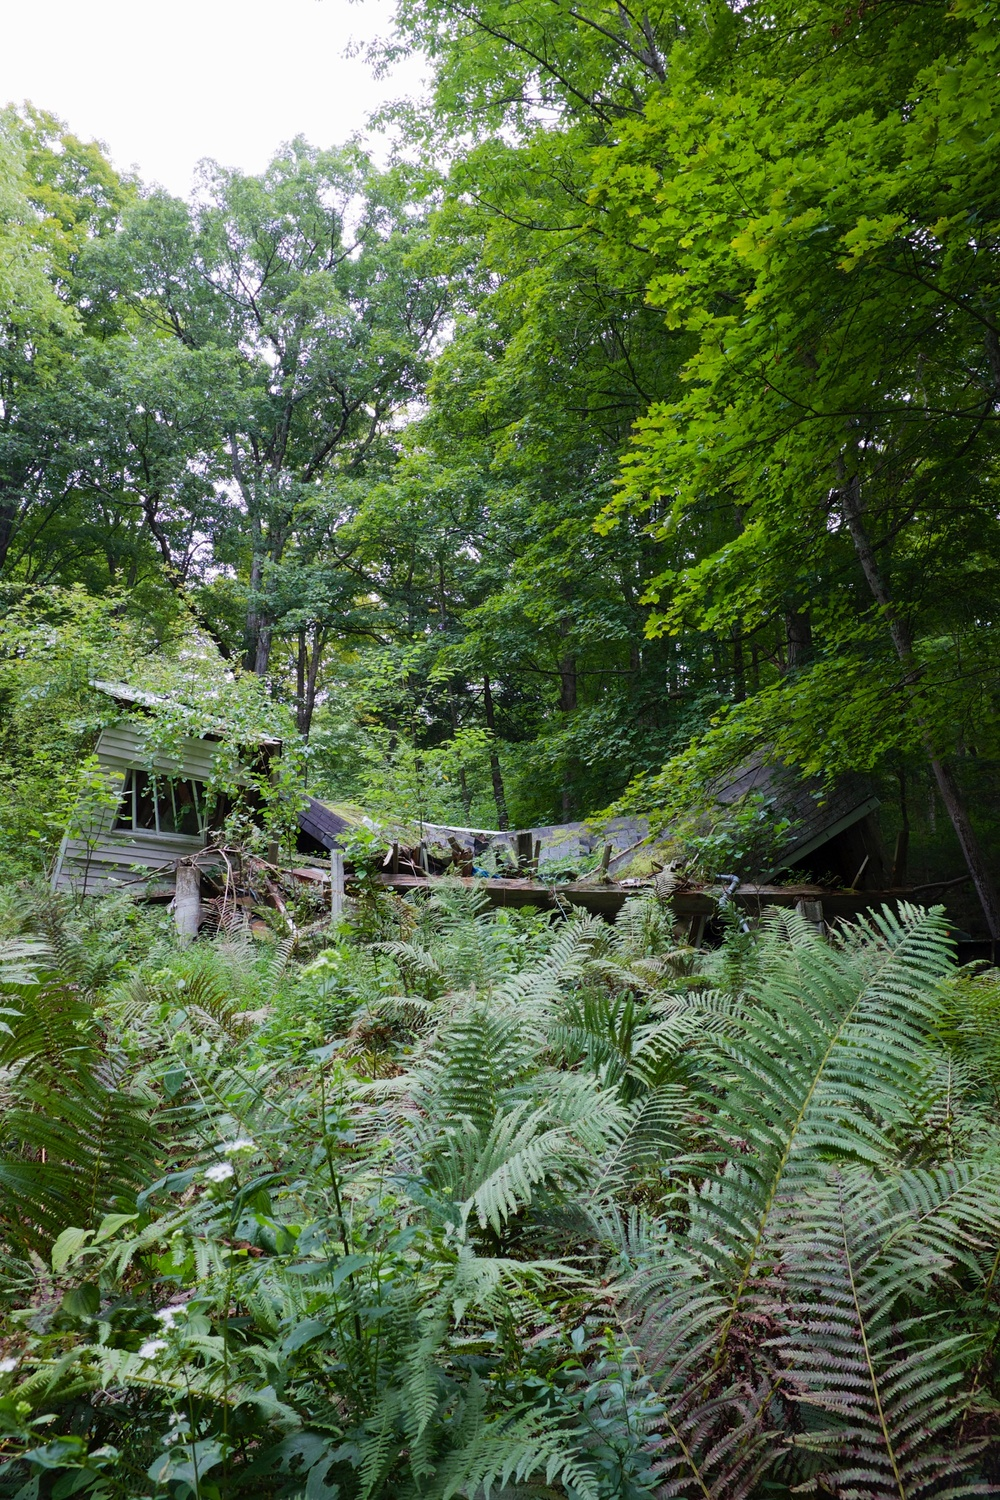 We took a lunch break when I spotted two abandoned cottages in the woods. This one was completely caved in and overgrown with ferns.